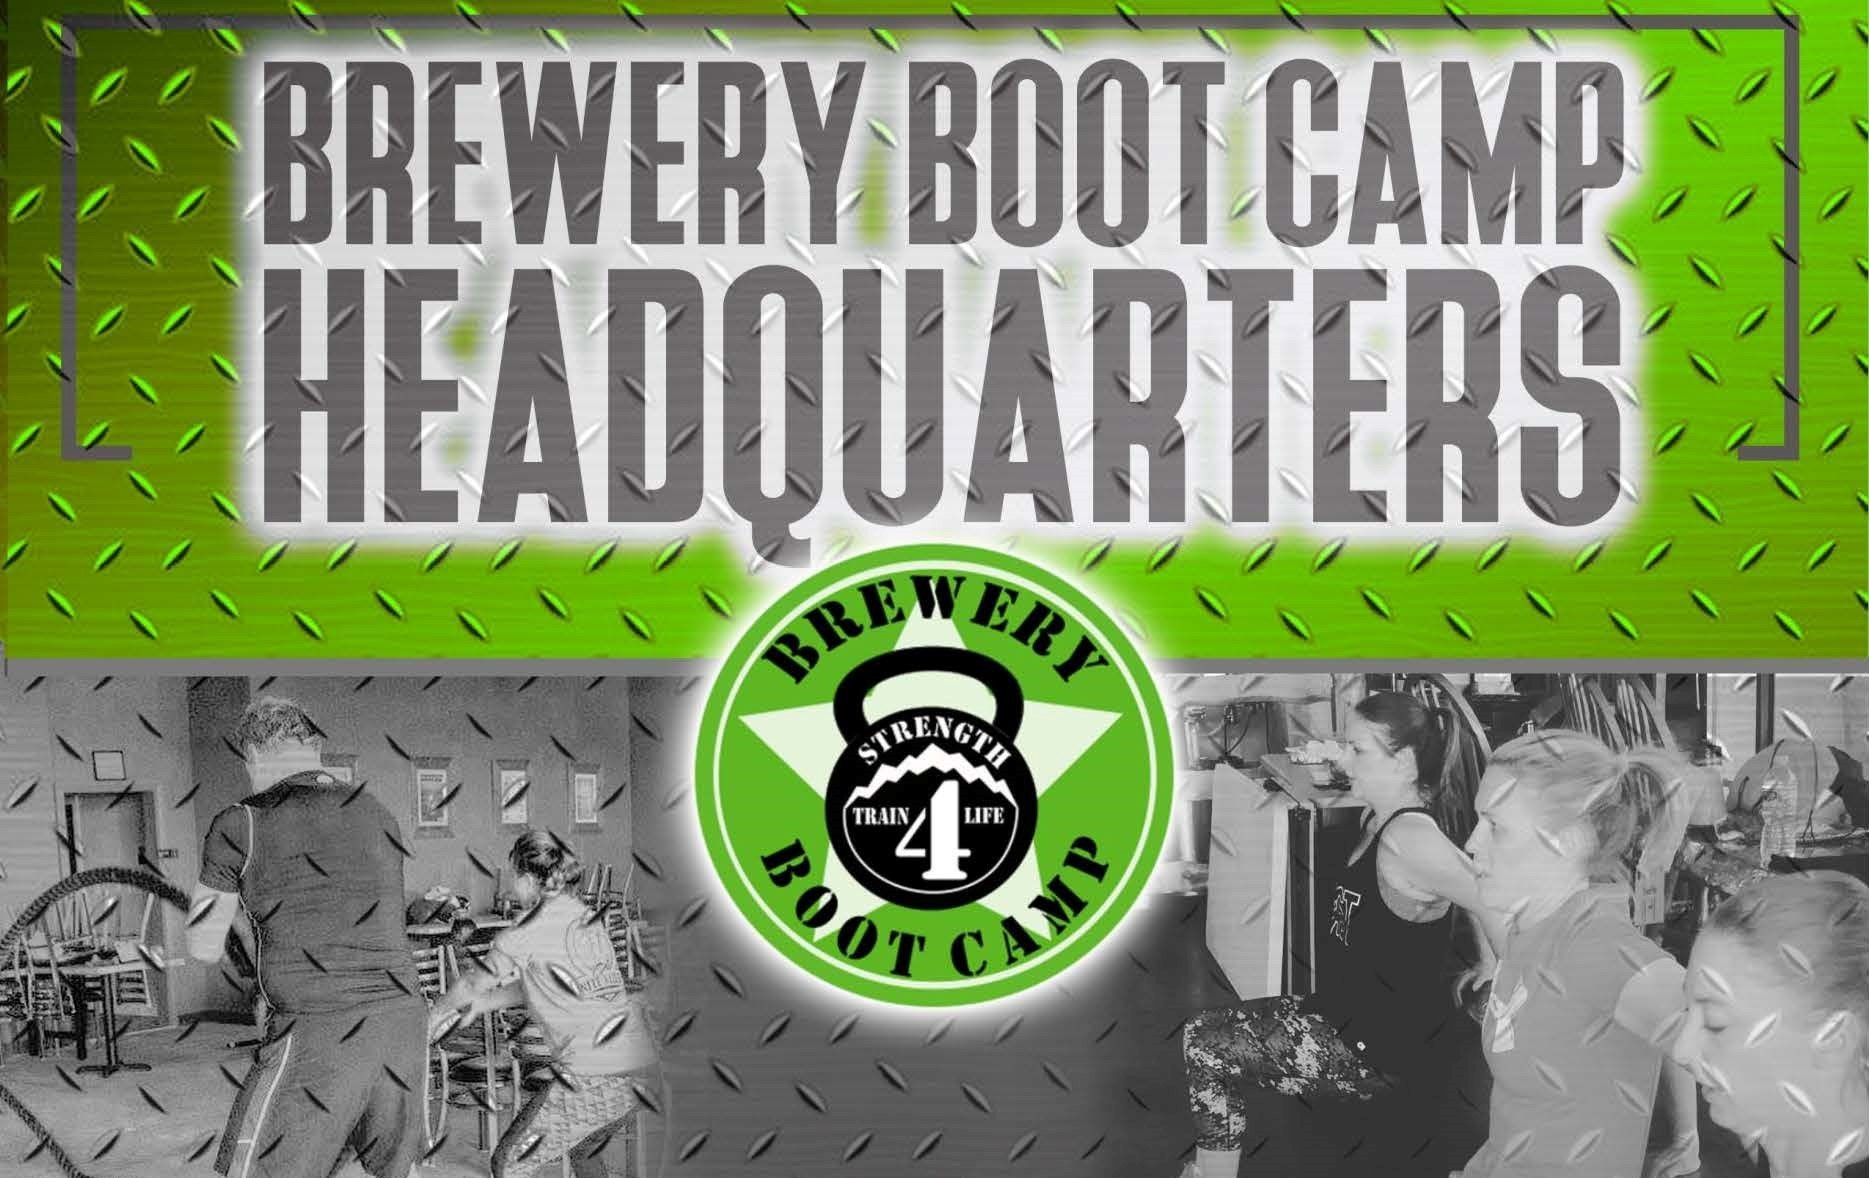 Brewery Boot Camp Headquarters classes